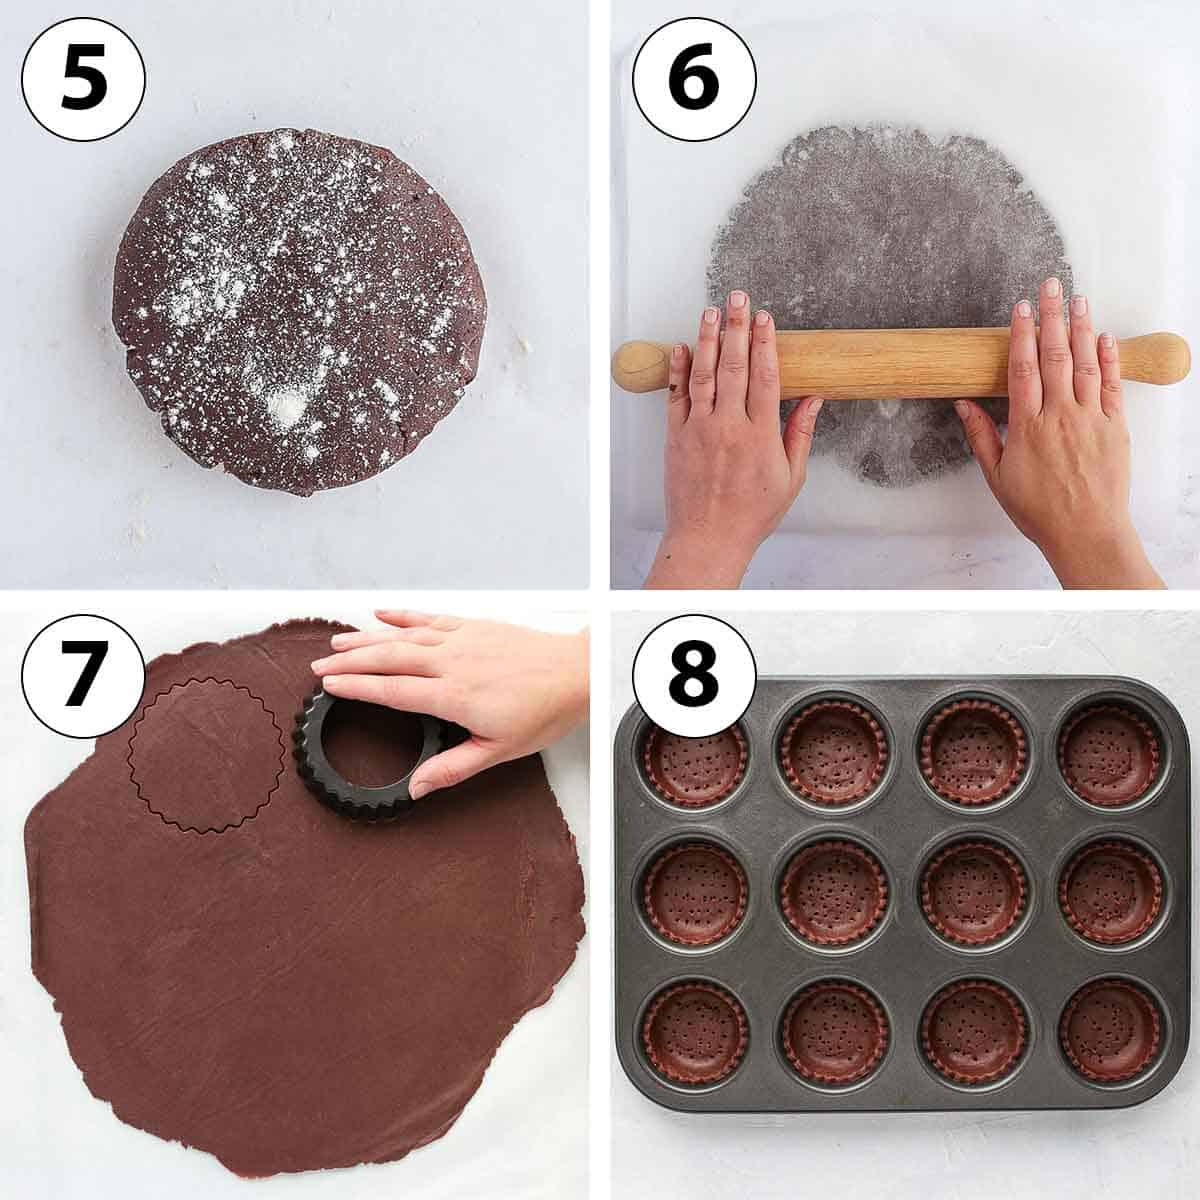 Process Shot Collage: rolling the pastry and lining the muffin pan with them.